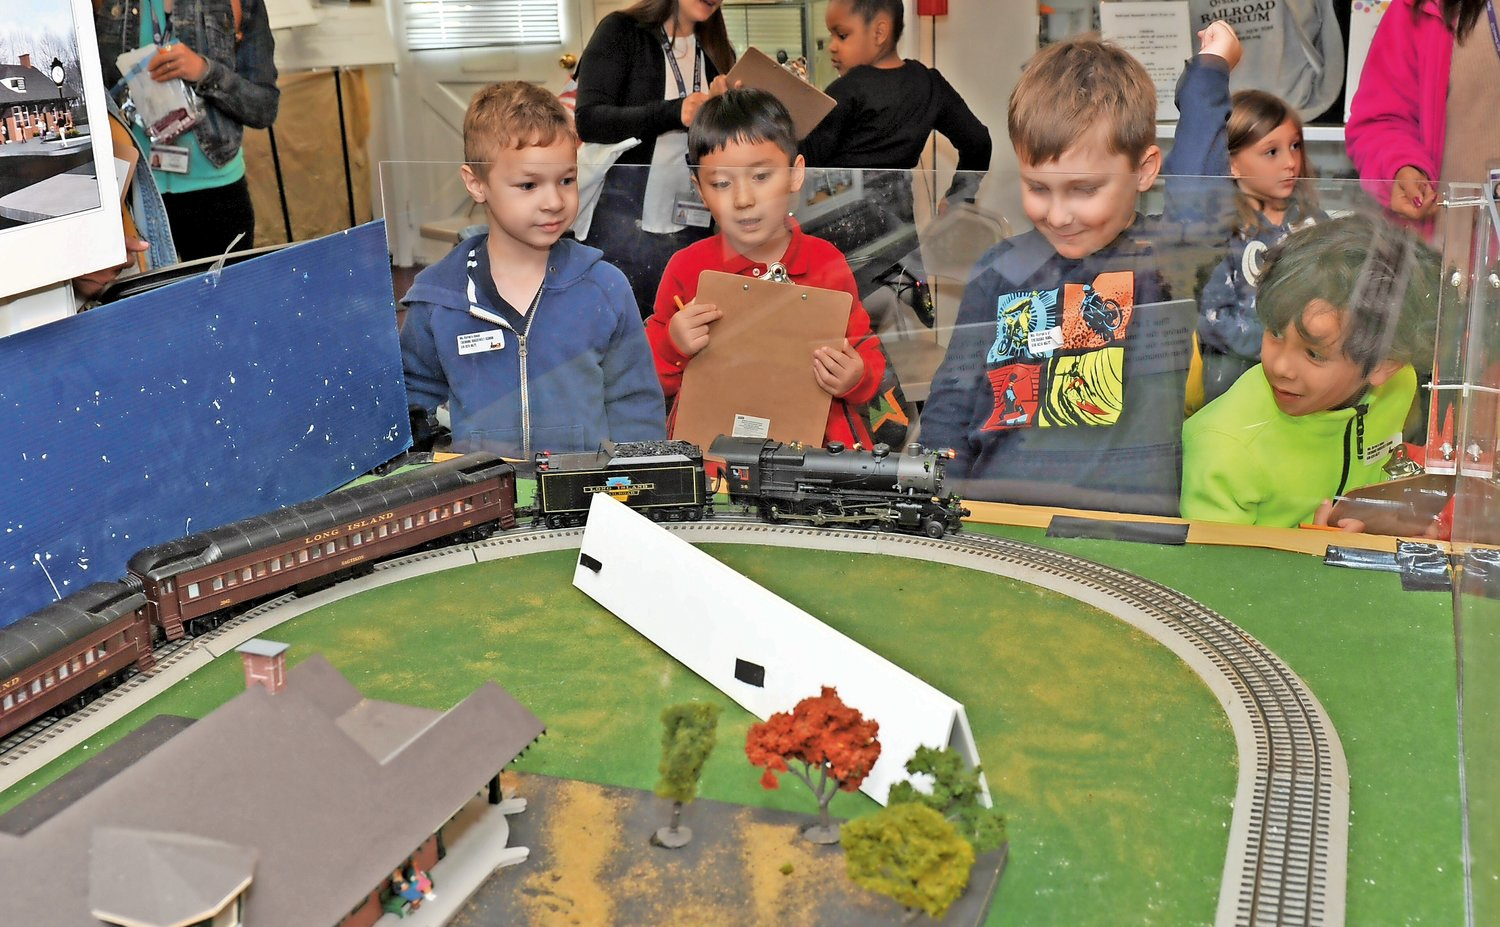 Richard Bebenec, far left, Austin Zhang, Trevor Malone and Johan Flores watched a model train at the Railroad Museum's visitor center.